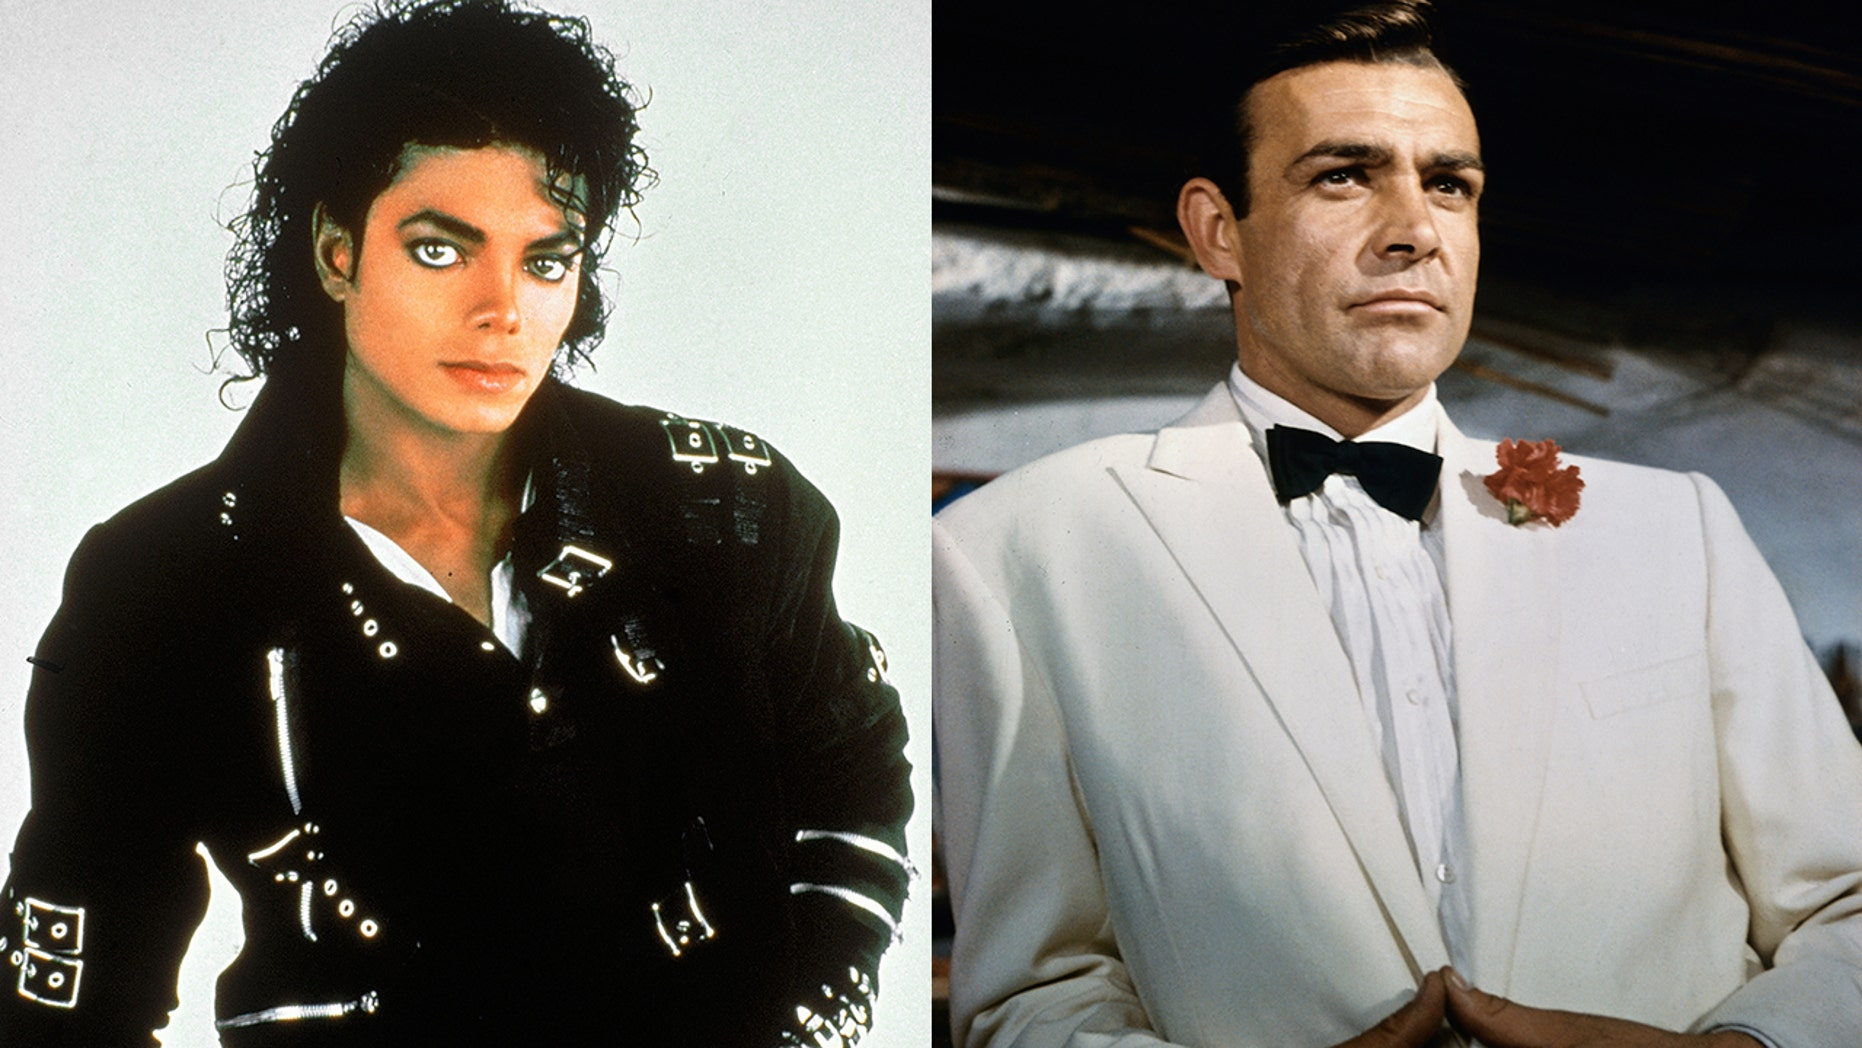 Michael Jackson reportedly talked about wanting to play James Bond in a 007 film.